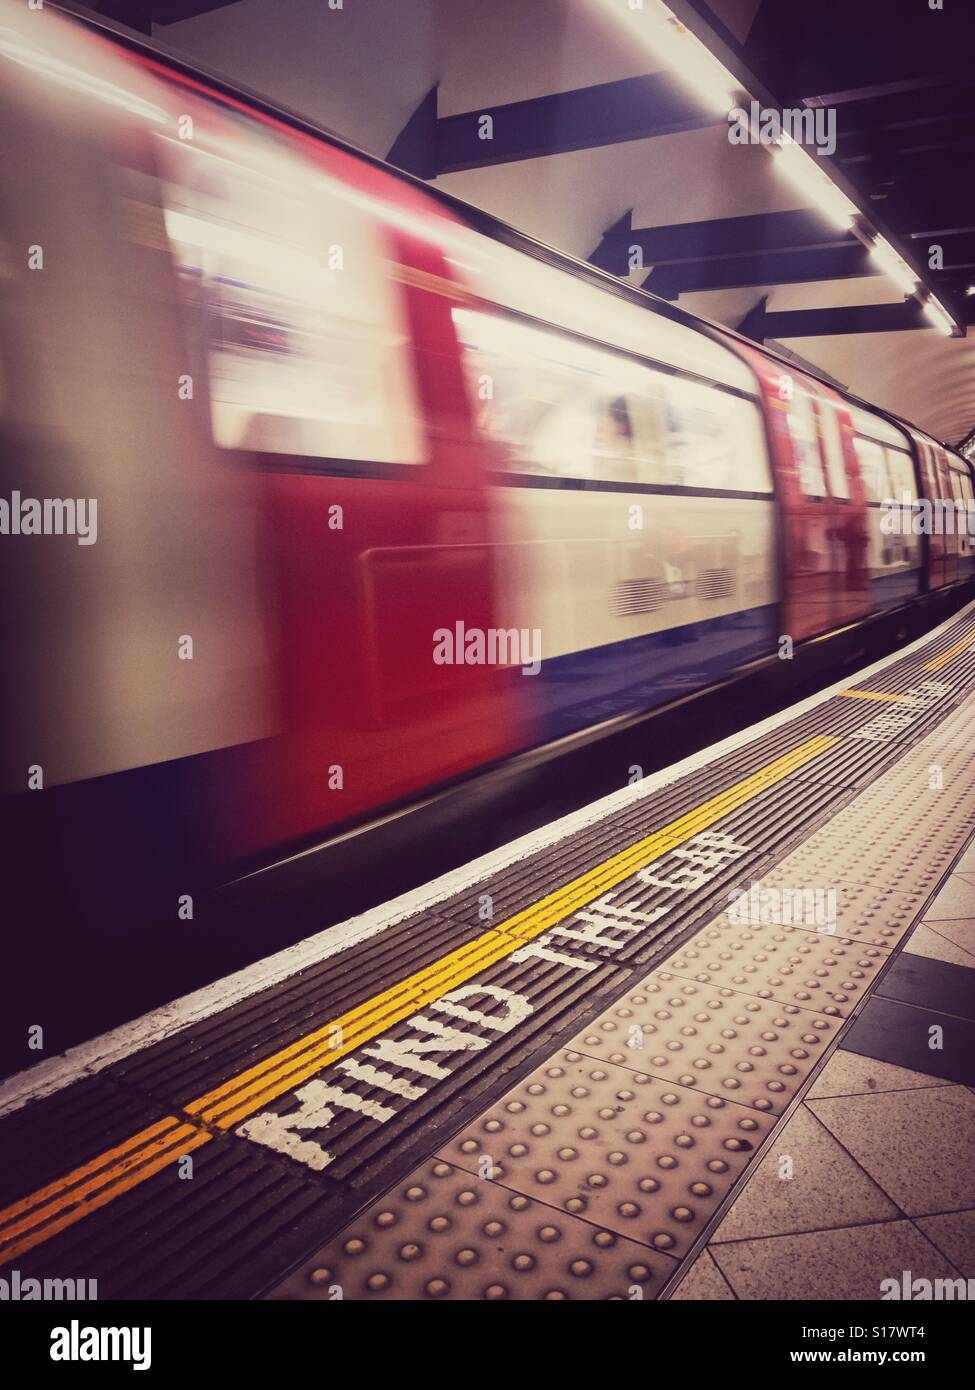 London Underground train - Stock Image